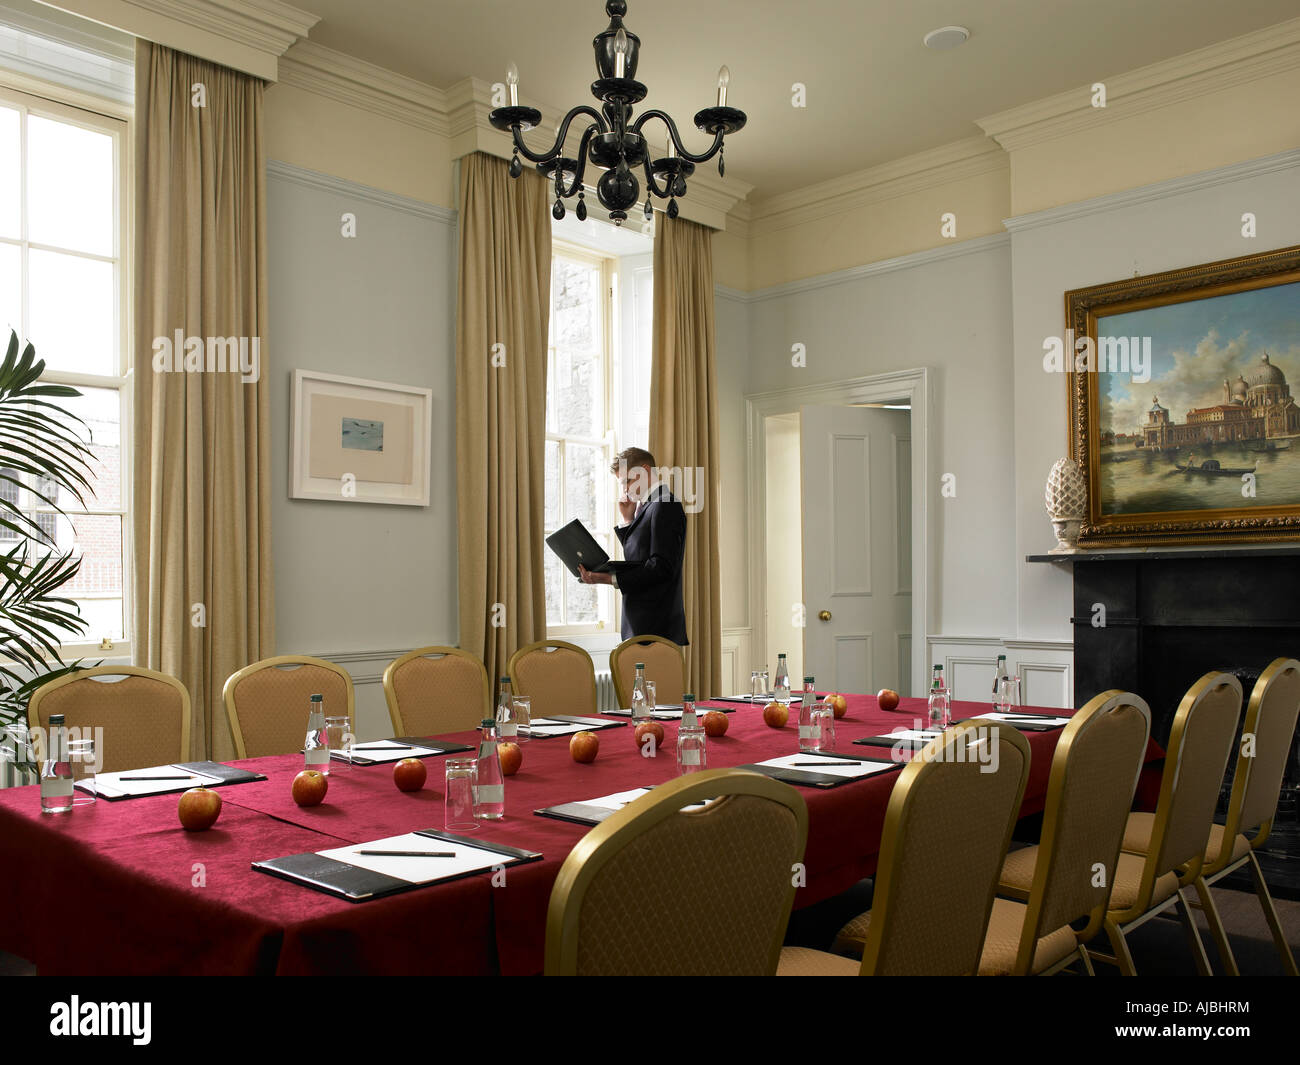 Boardroom set for a meeting to begin - Stock Image